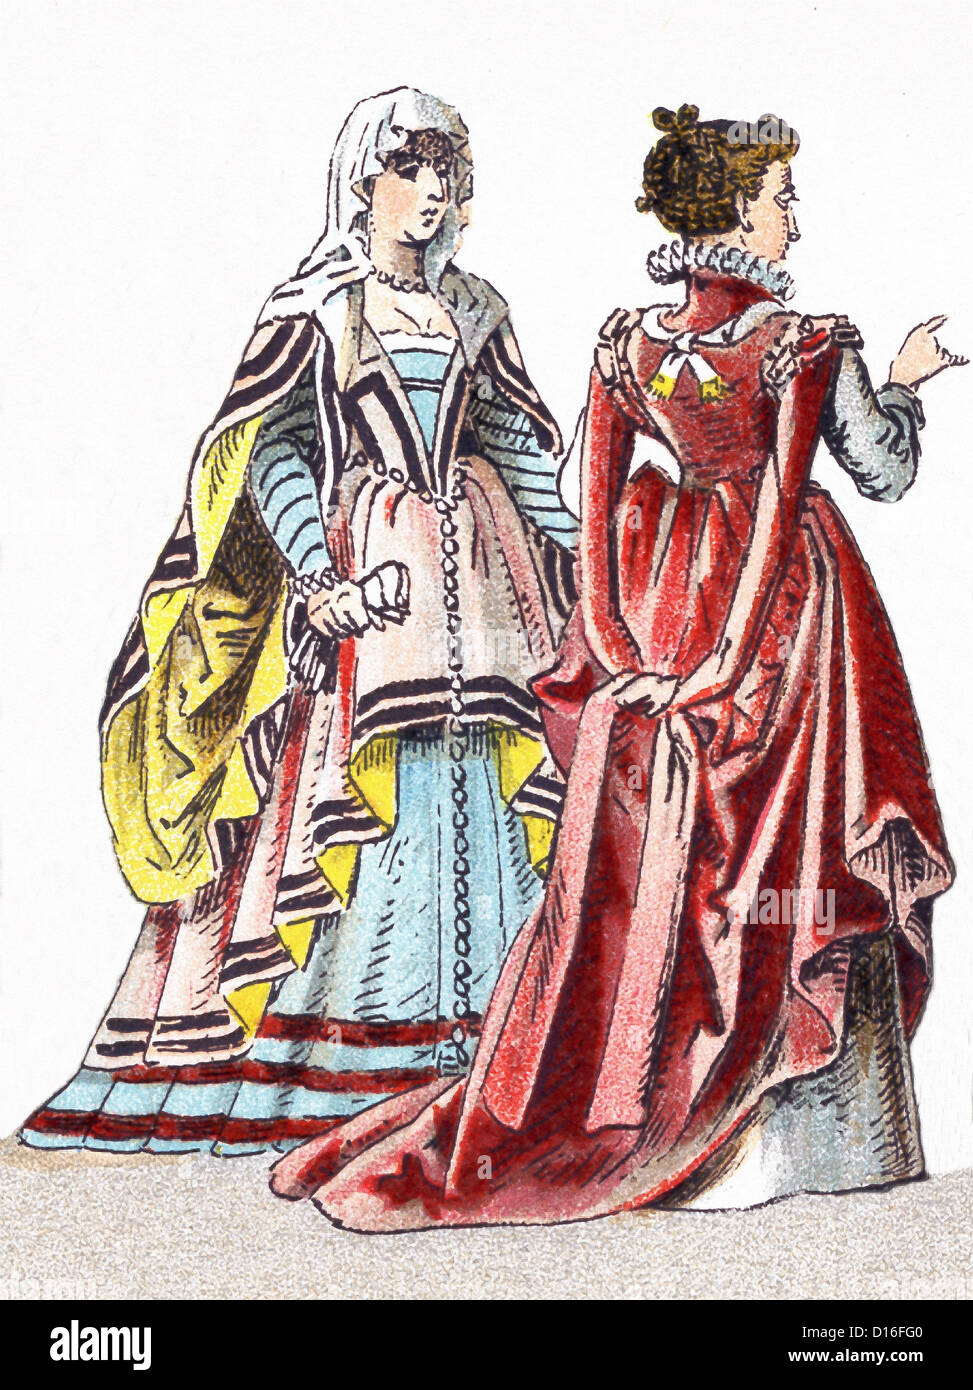 This illustration, which dates to 1882, shows two Italian women between 1500 and 1550. - Stock Image